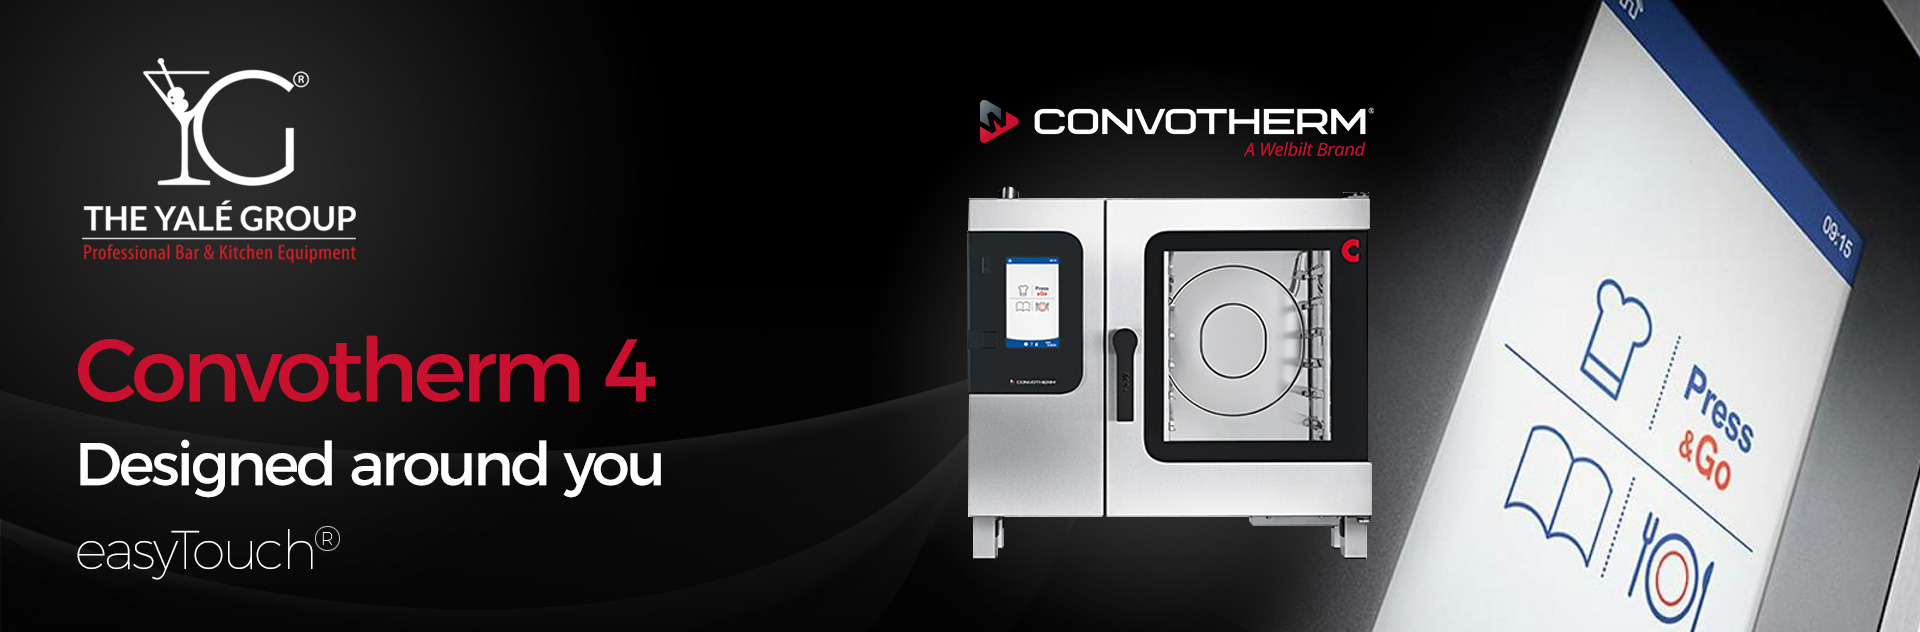 convotherm 4 easyTouch